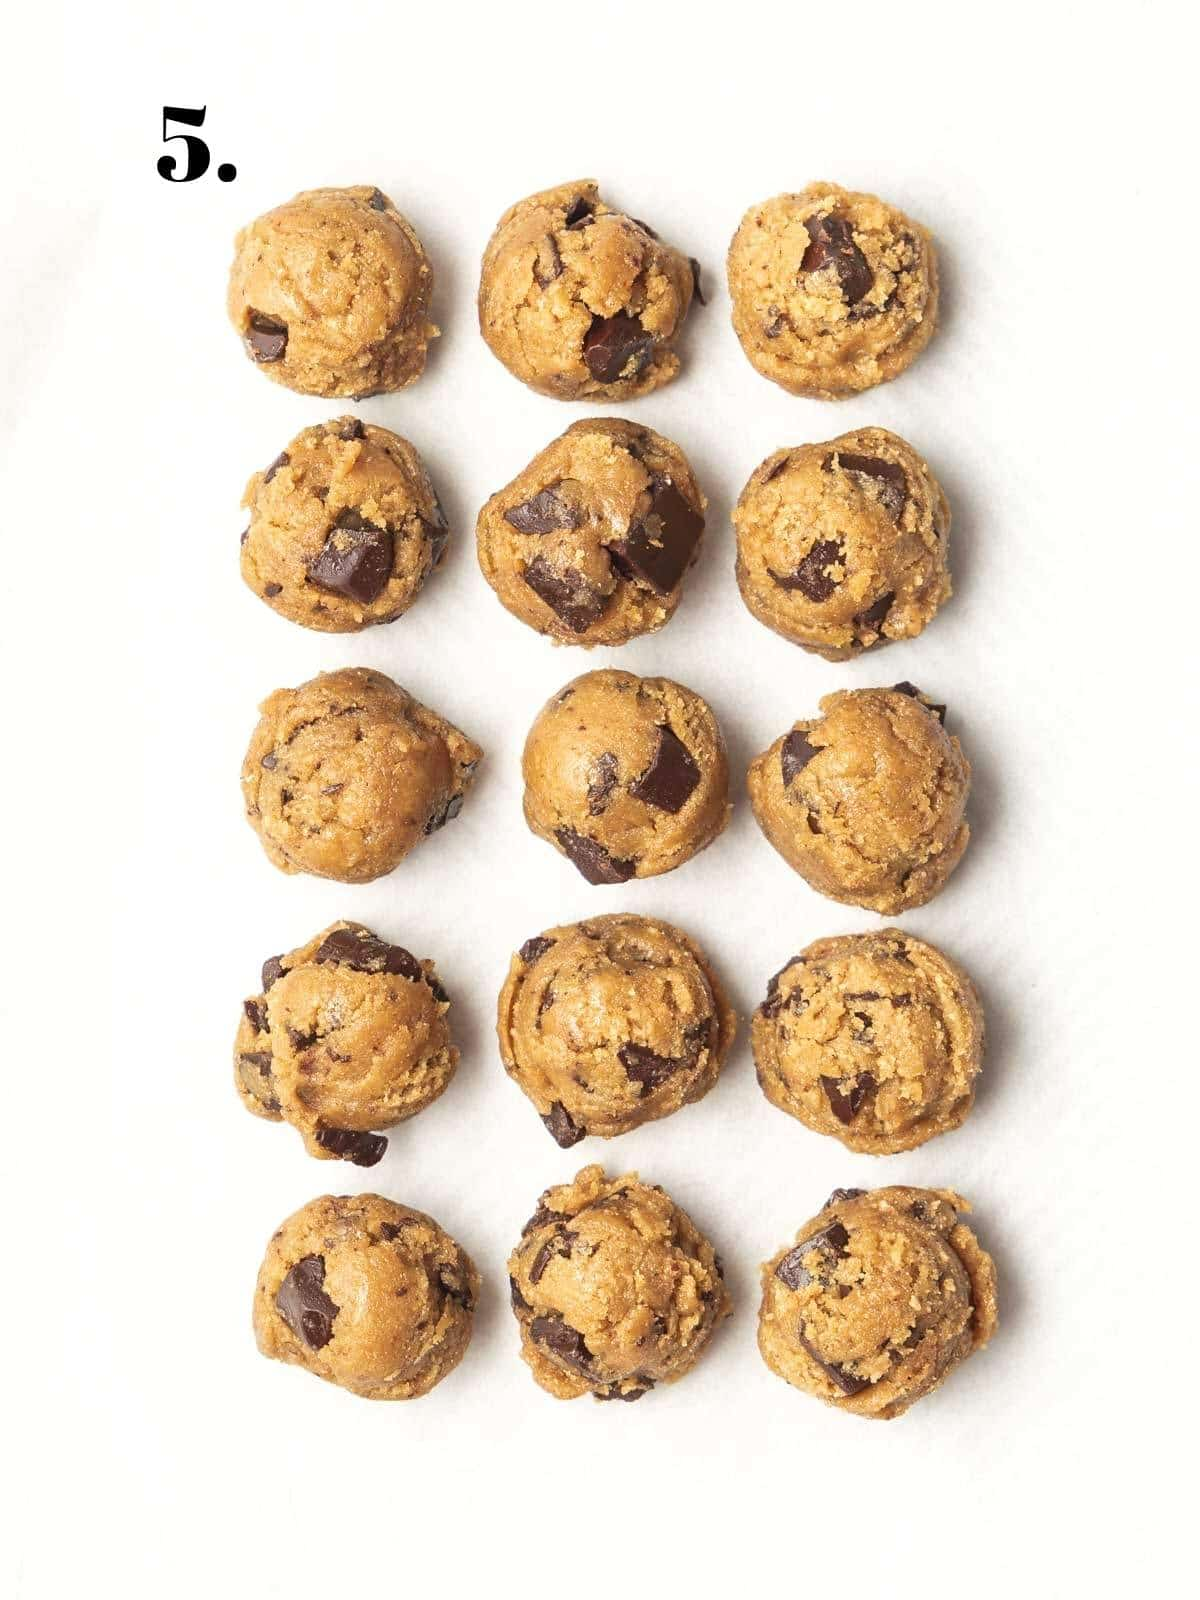 Cookie dough balls on a lined tray.